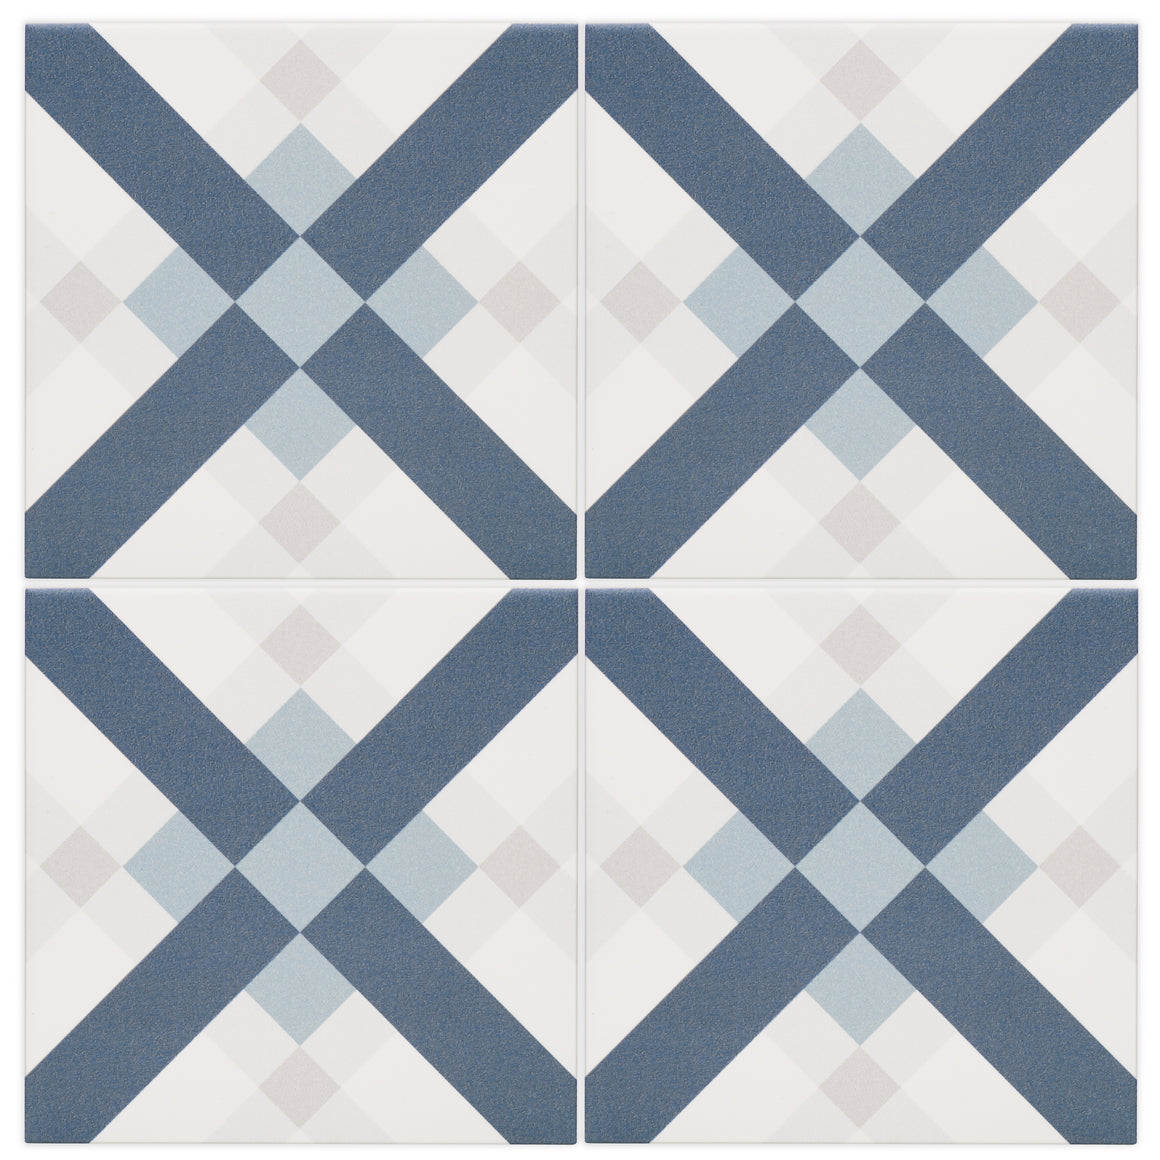 Tesseract Blue, Grey, White modern matte porcelain decorative pattern tile for residential bathroom and kitchen floor imported from Italy, Self more decor 4 available from TilesInspired Canada's Online Tile Store delivering across Ontario and Quebec, including Toronto, Montreal, Ottawa, London, Windsor, Kitchener, Muskoka, Barrie, Kingston, Hamilton, and Niagara decoration idea